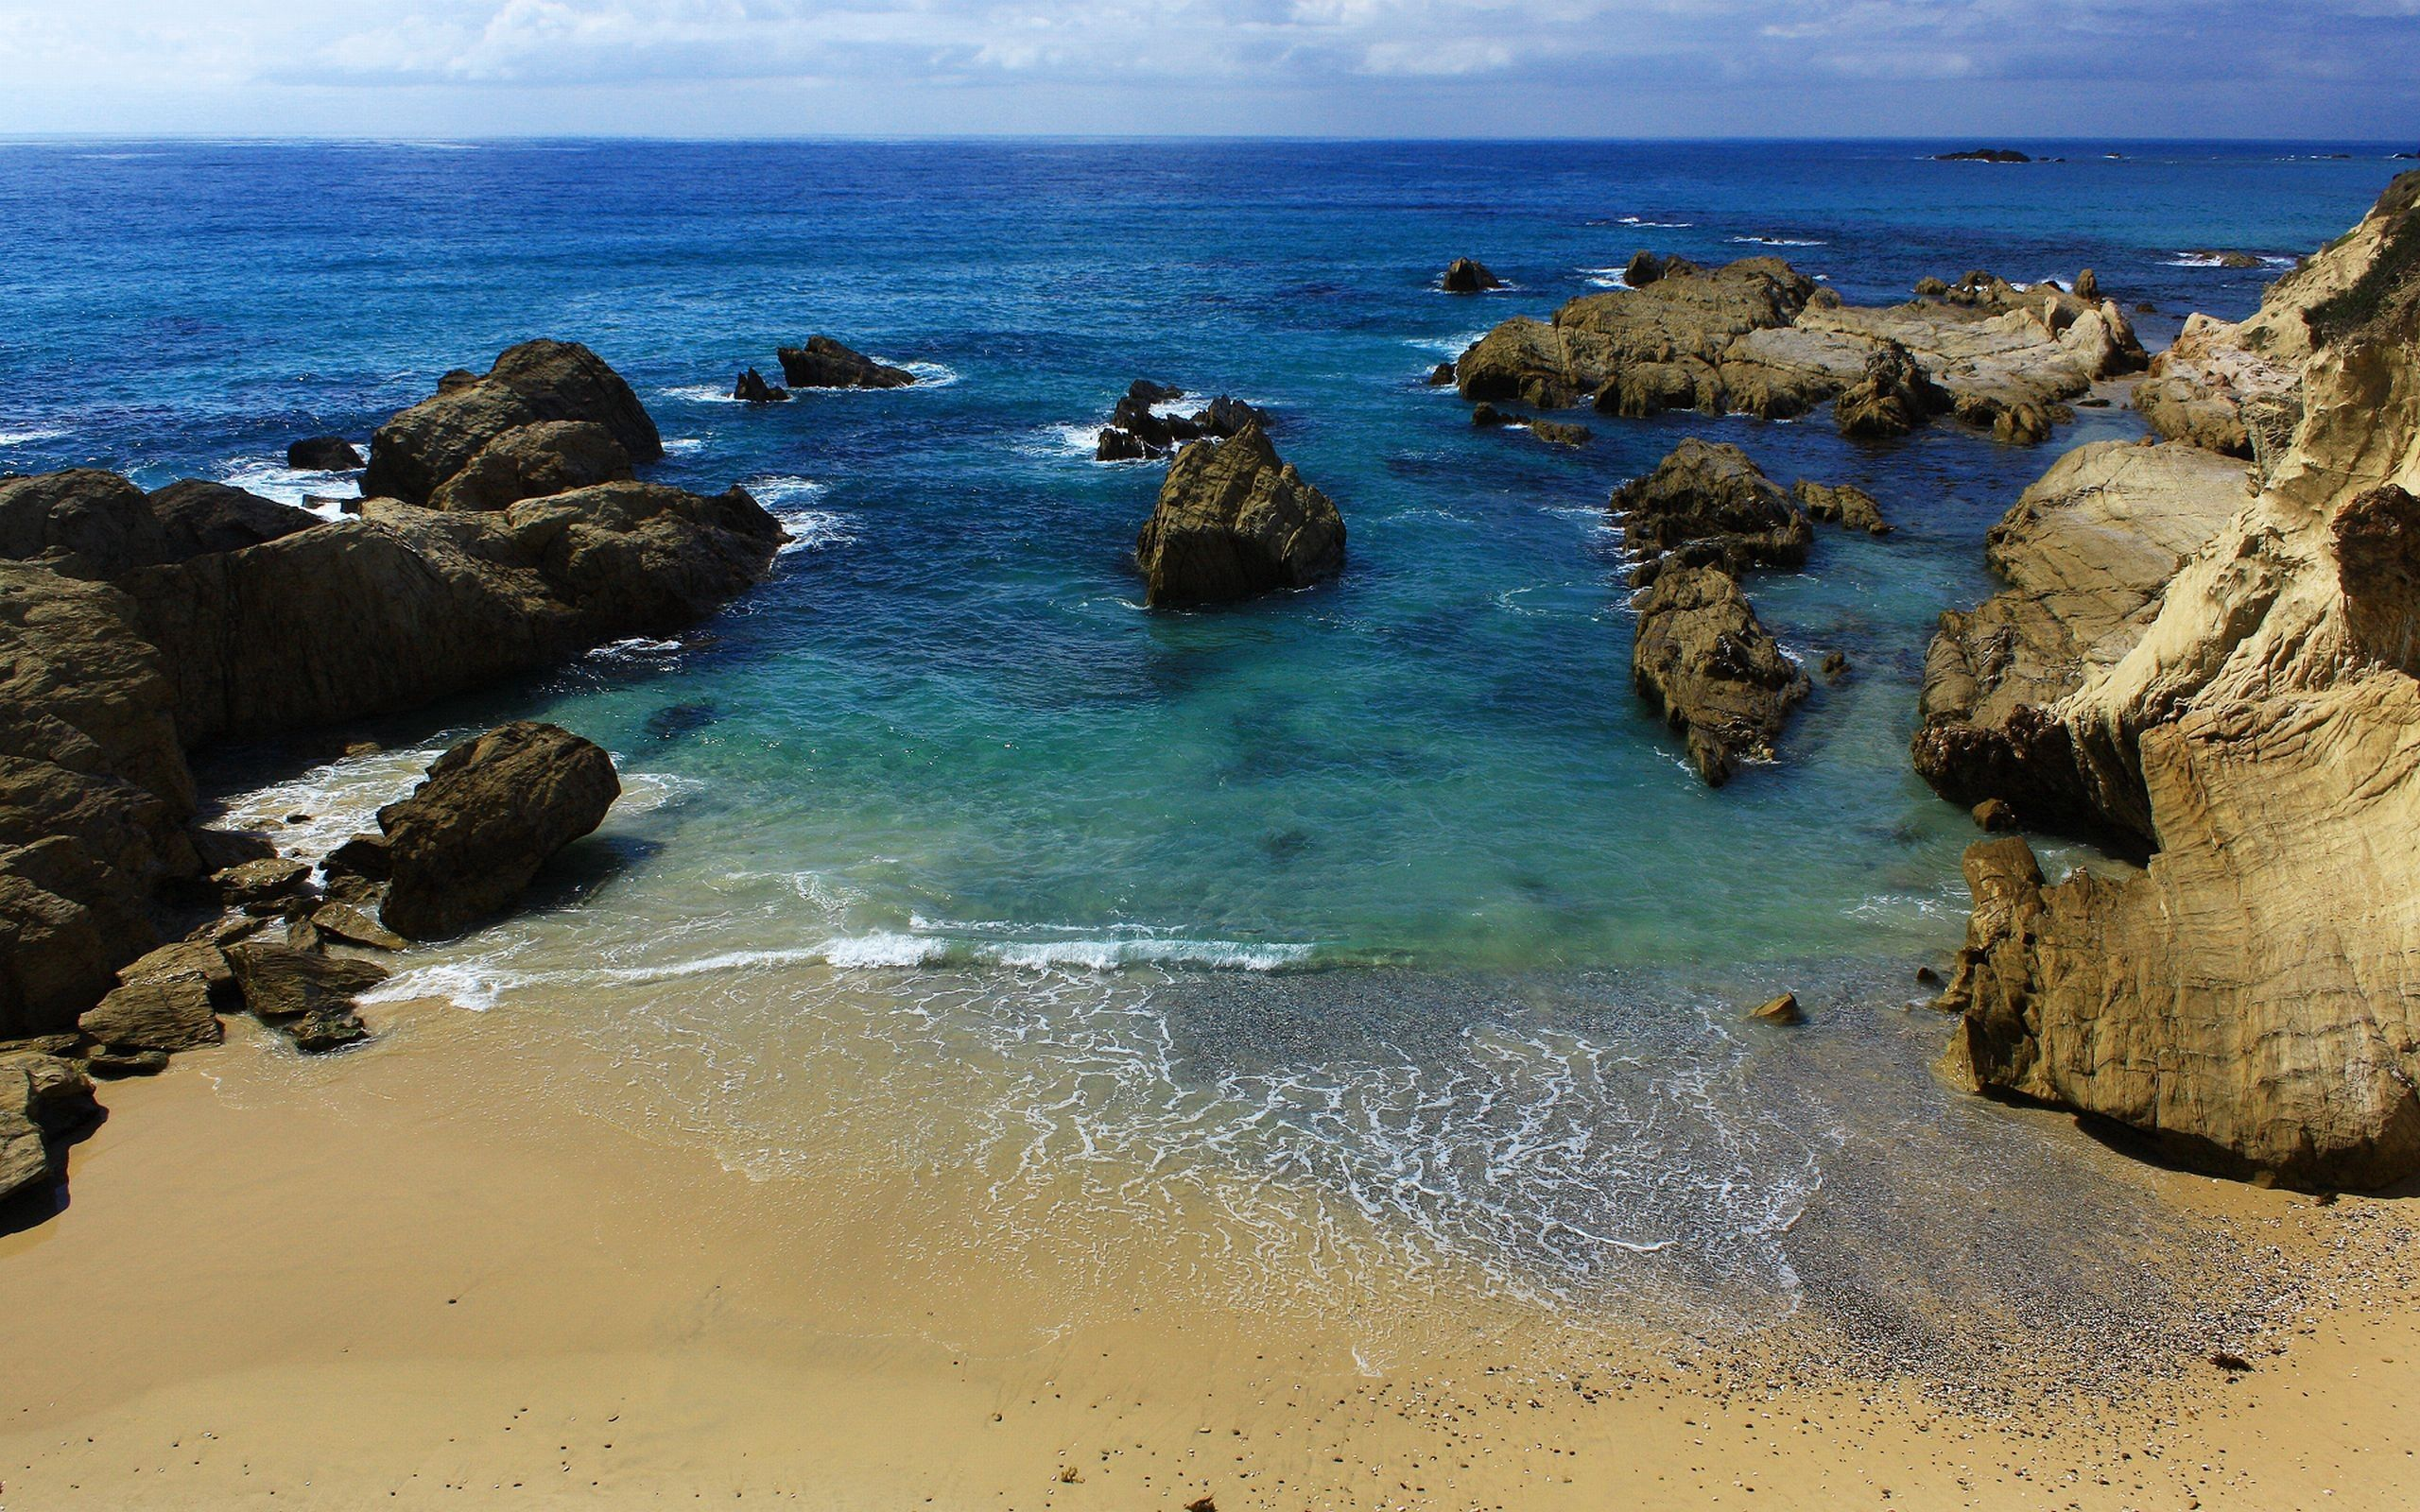 69858 download wallpaper Nature, Sea, Stones, Sand, Shore, Bank screensavers and pictures for free